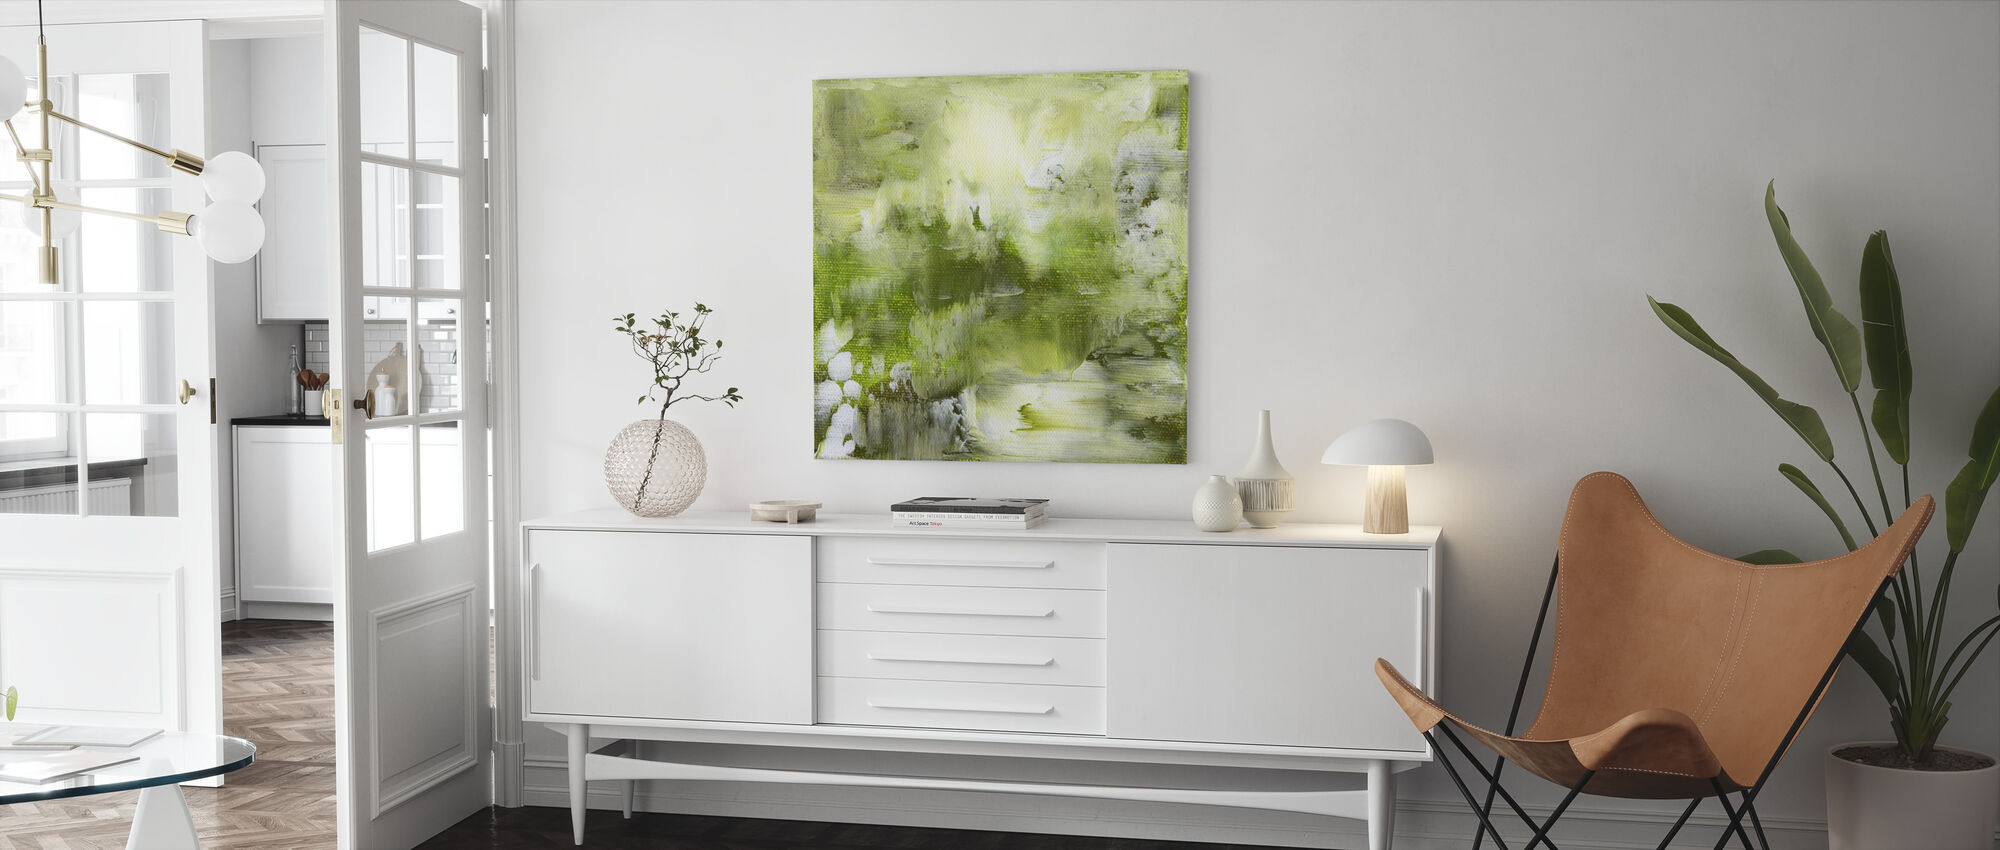 Shades of Green - Canvas print - Living Room